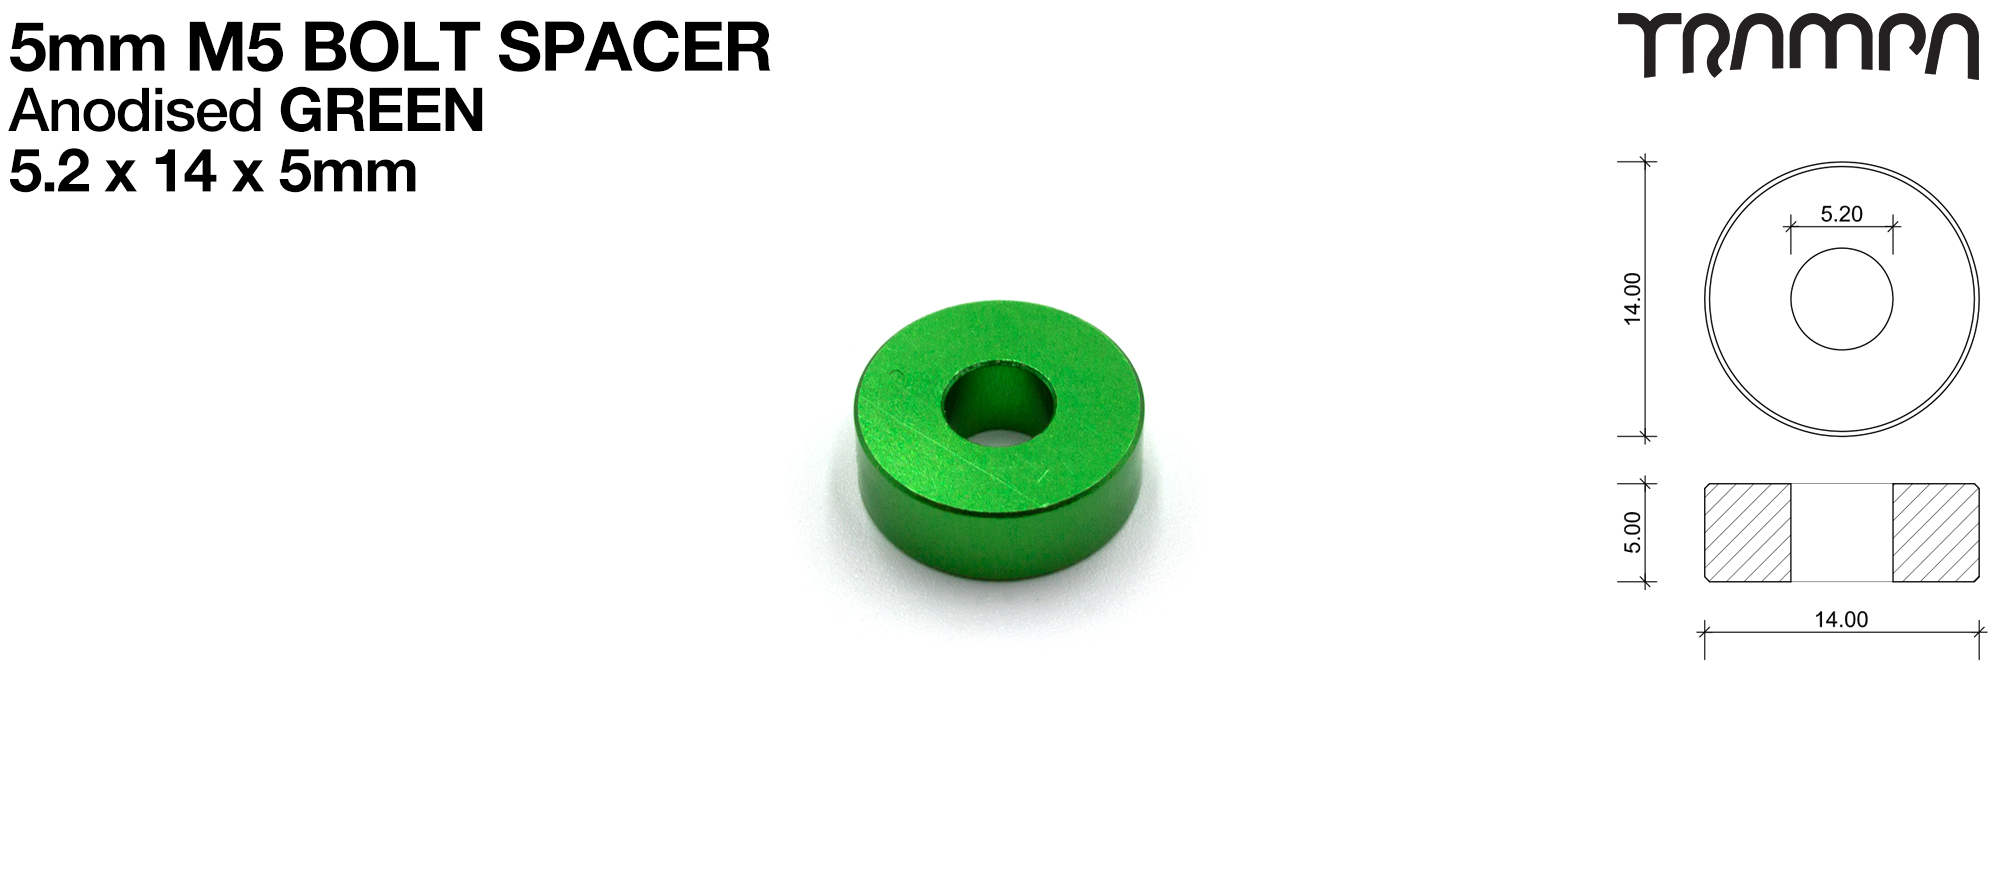 M5 5mm Spacer - GREEN